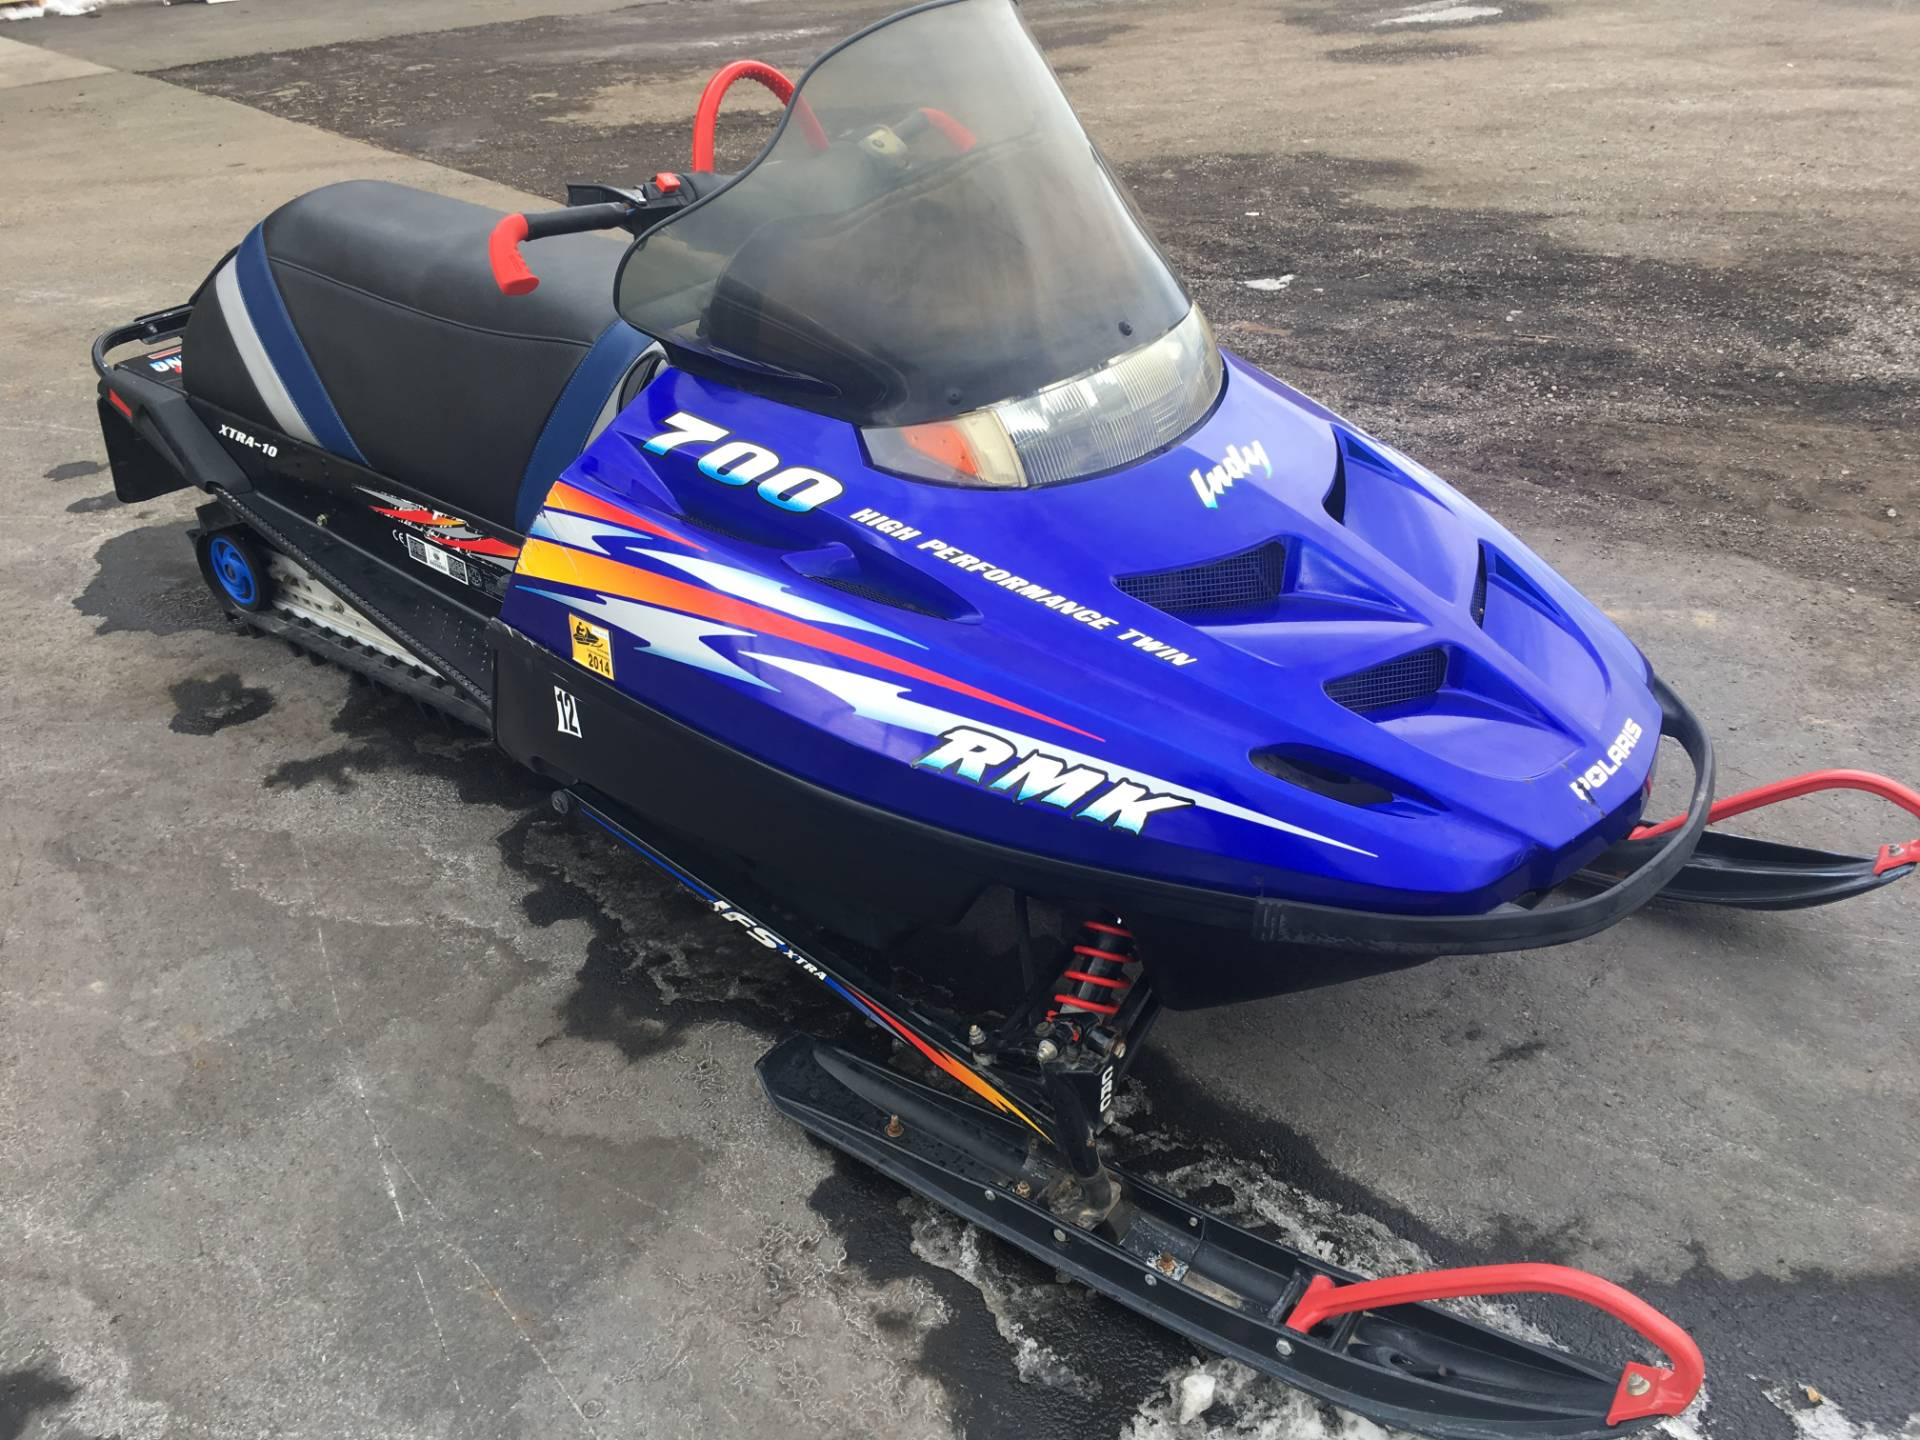 1999 Polaris Indy 700 RMK in Kamas, Utah